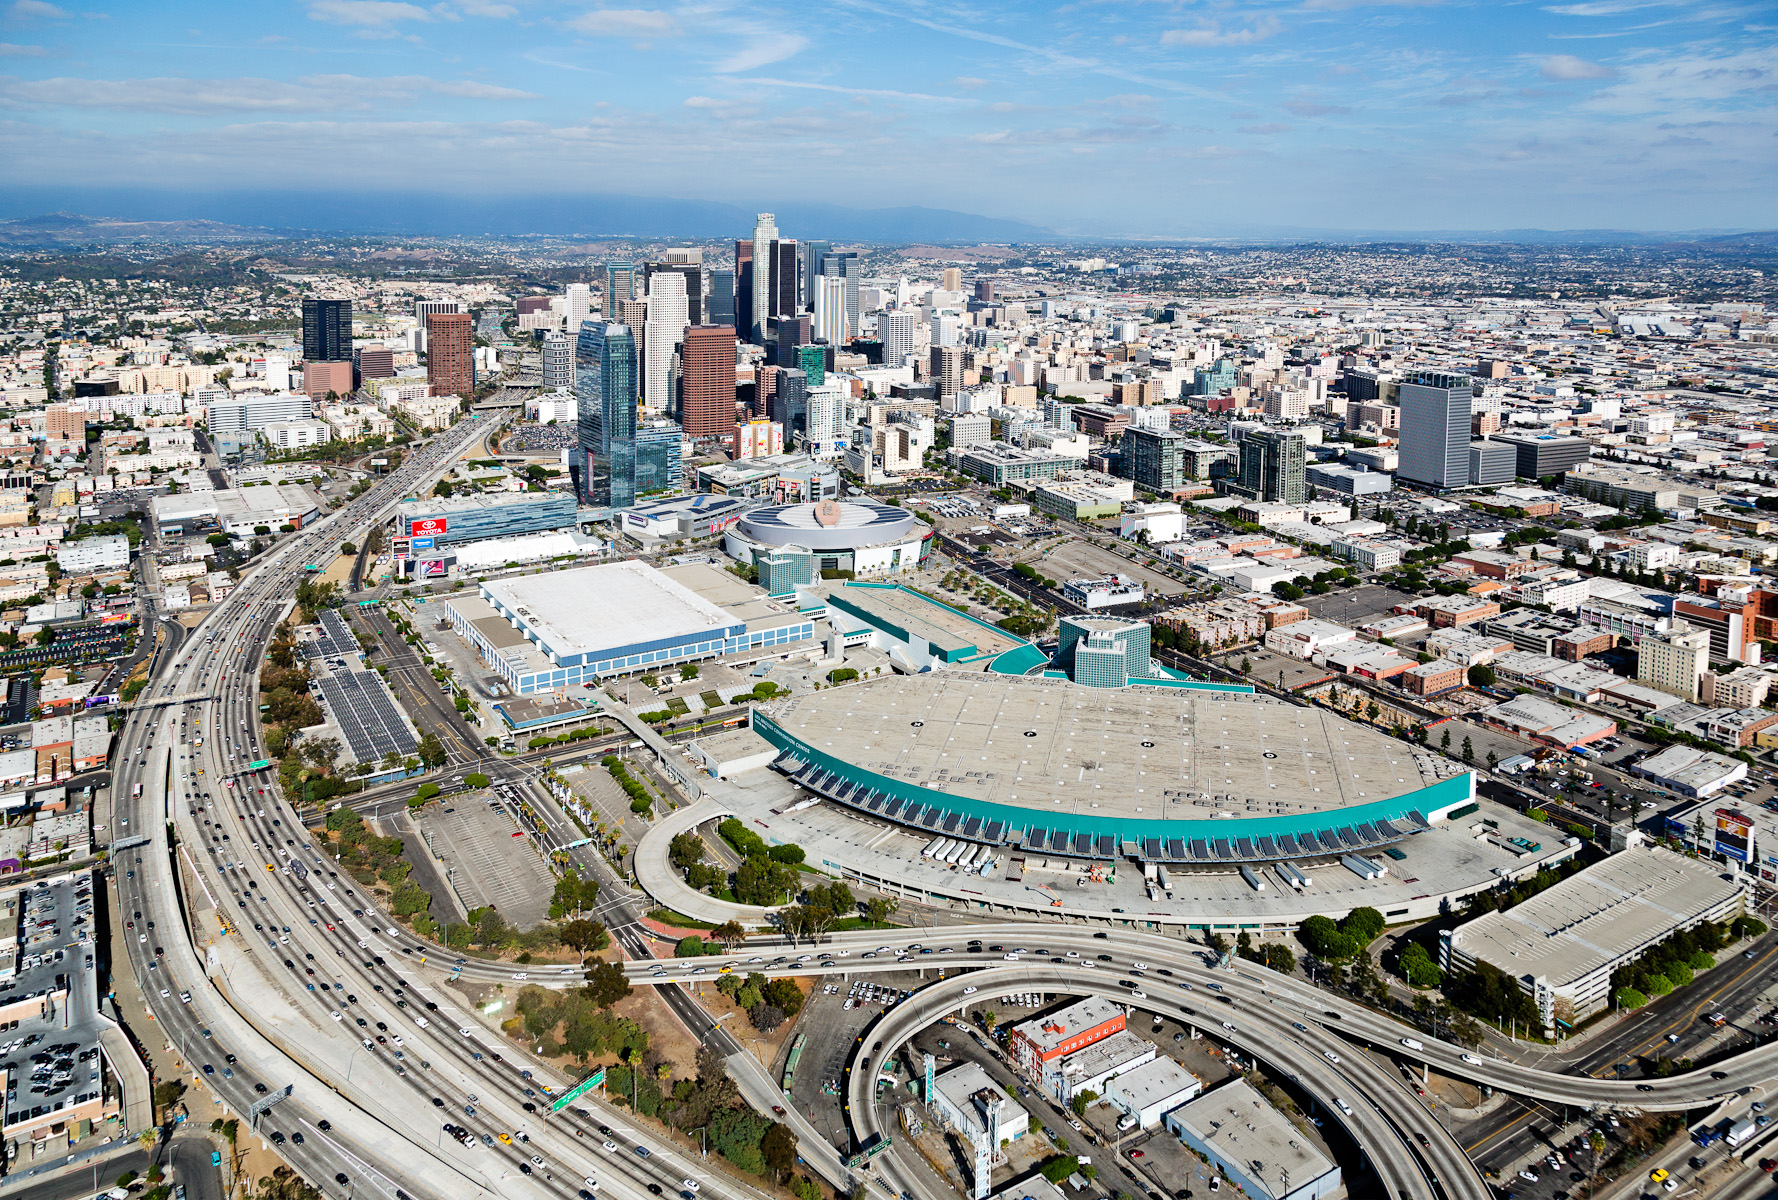 Aerial View of Los Angeles Convention Center and Downtown